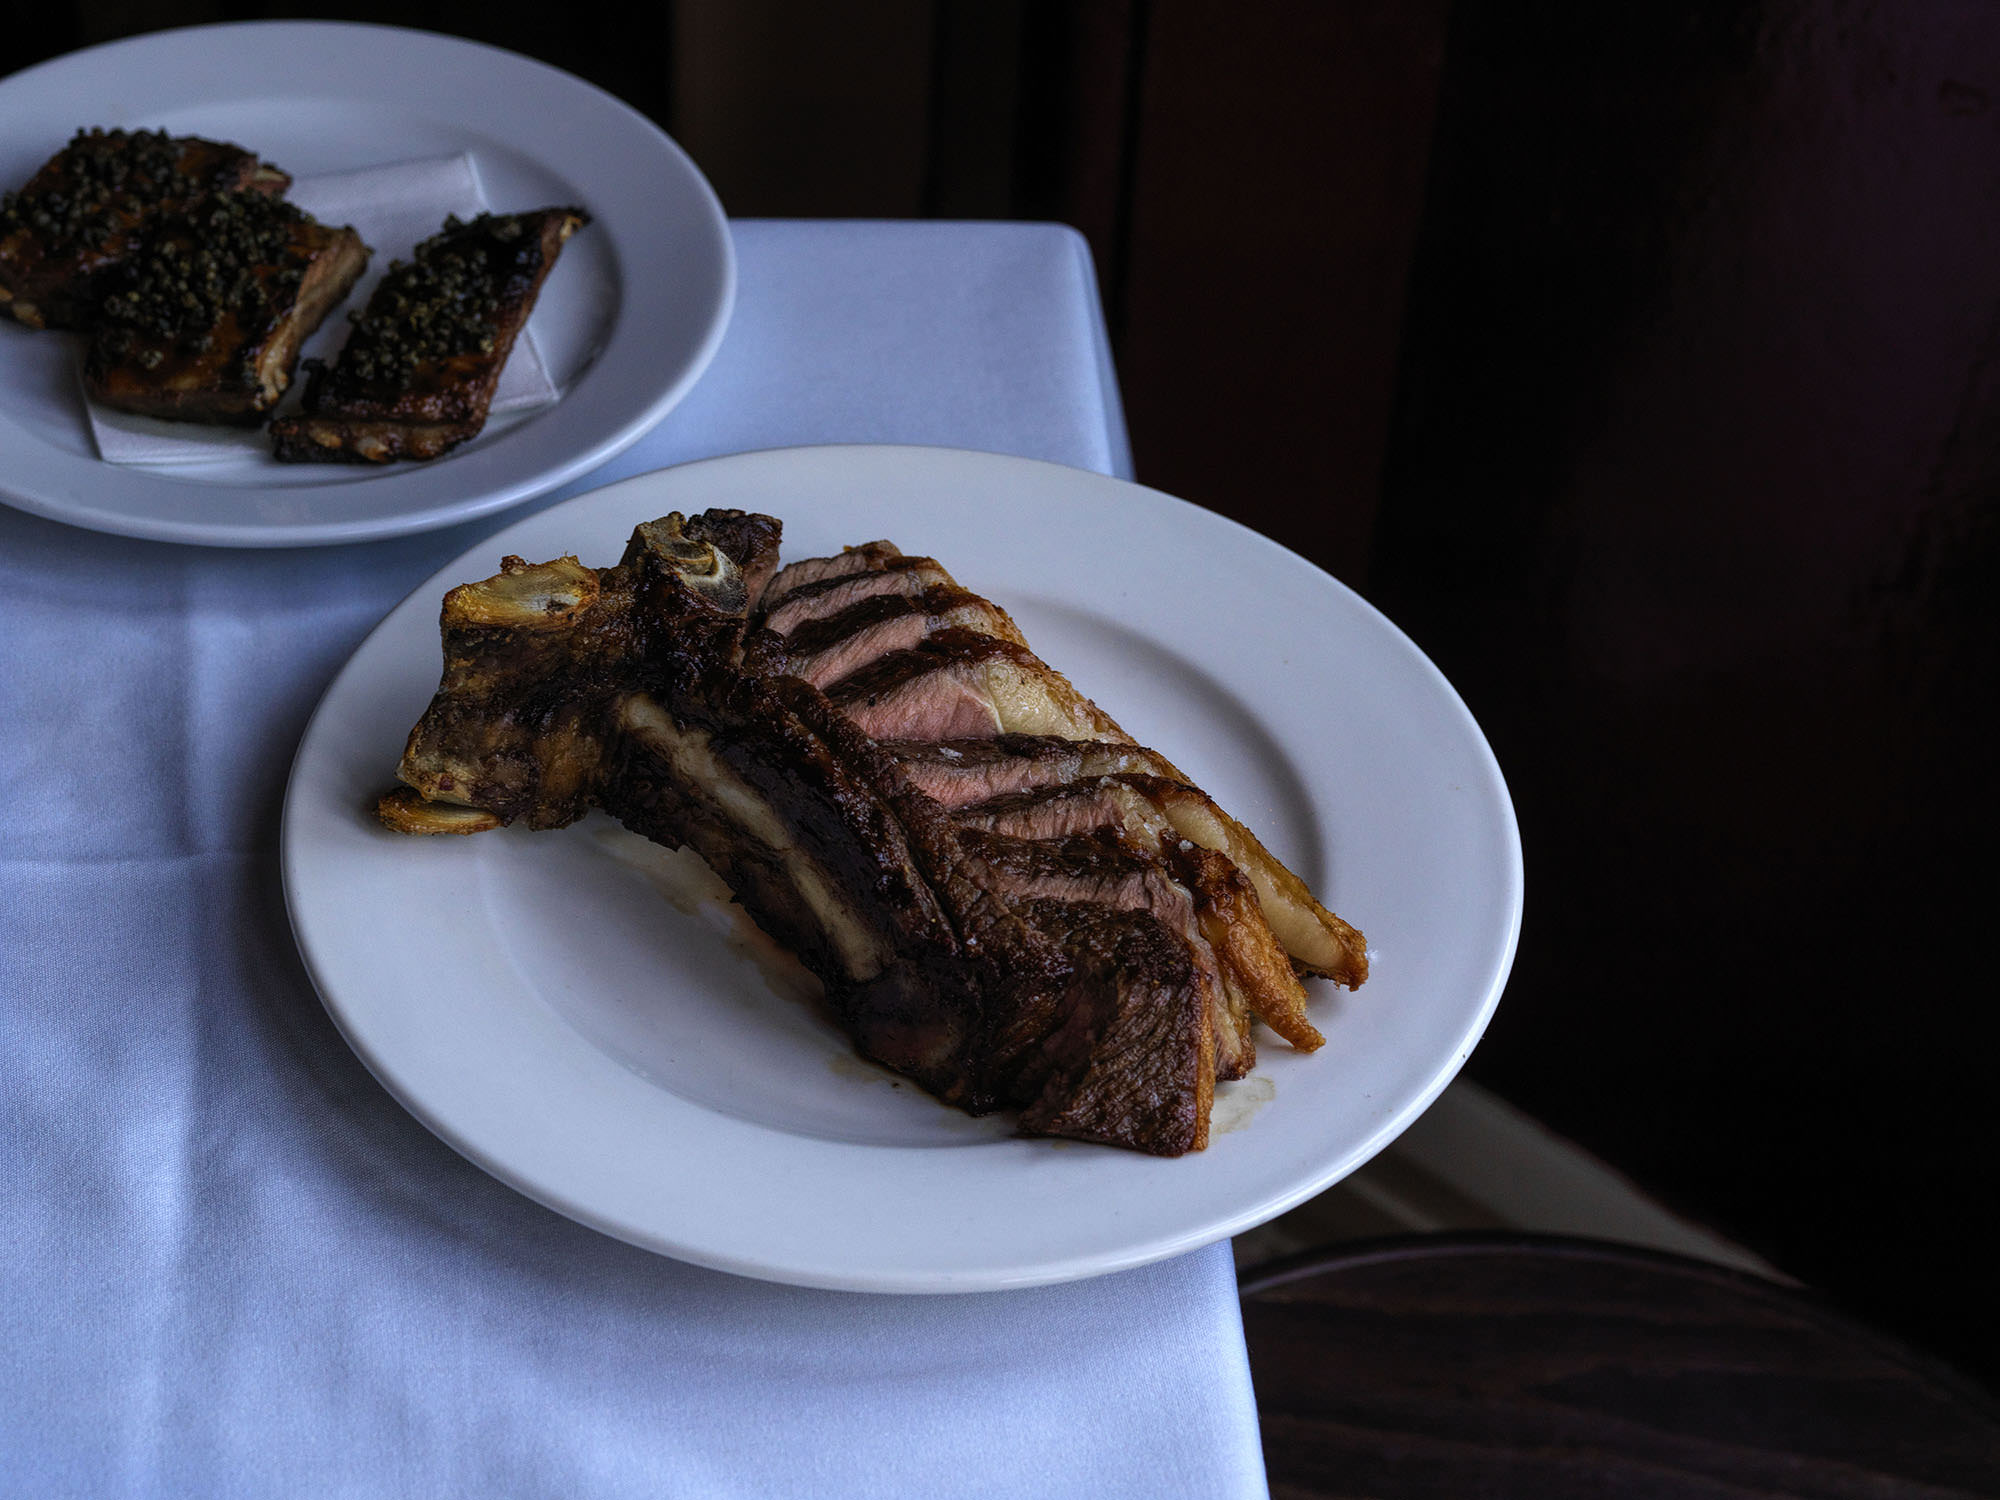 18 month old Angus sirloin dry aged for 4 weeks and served on the bone.